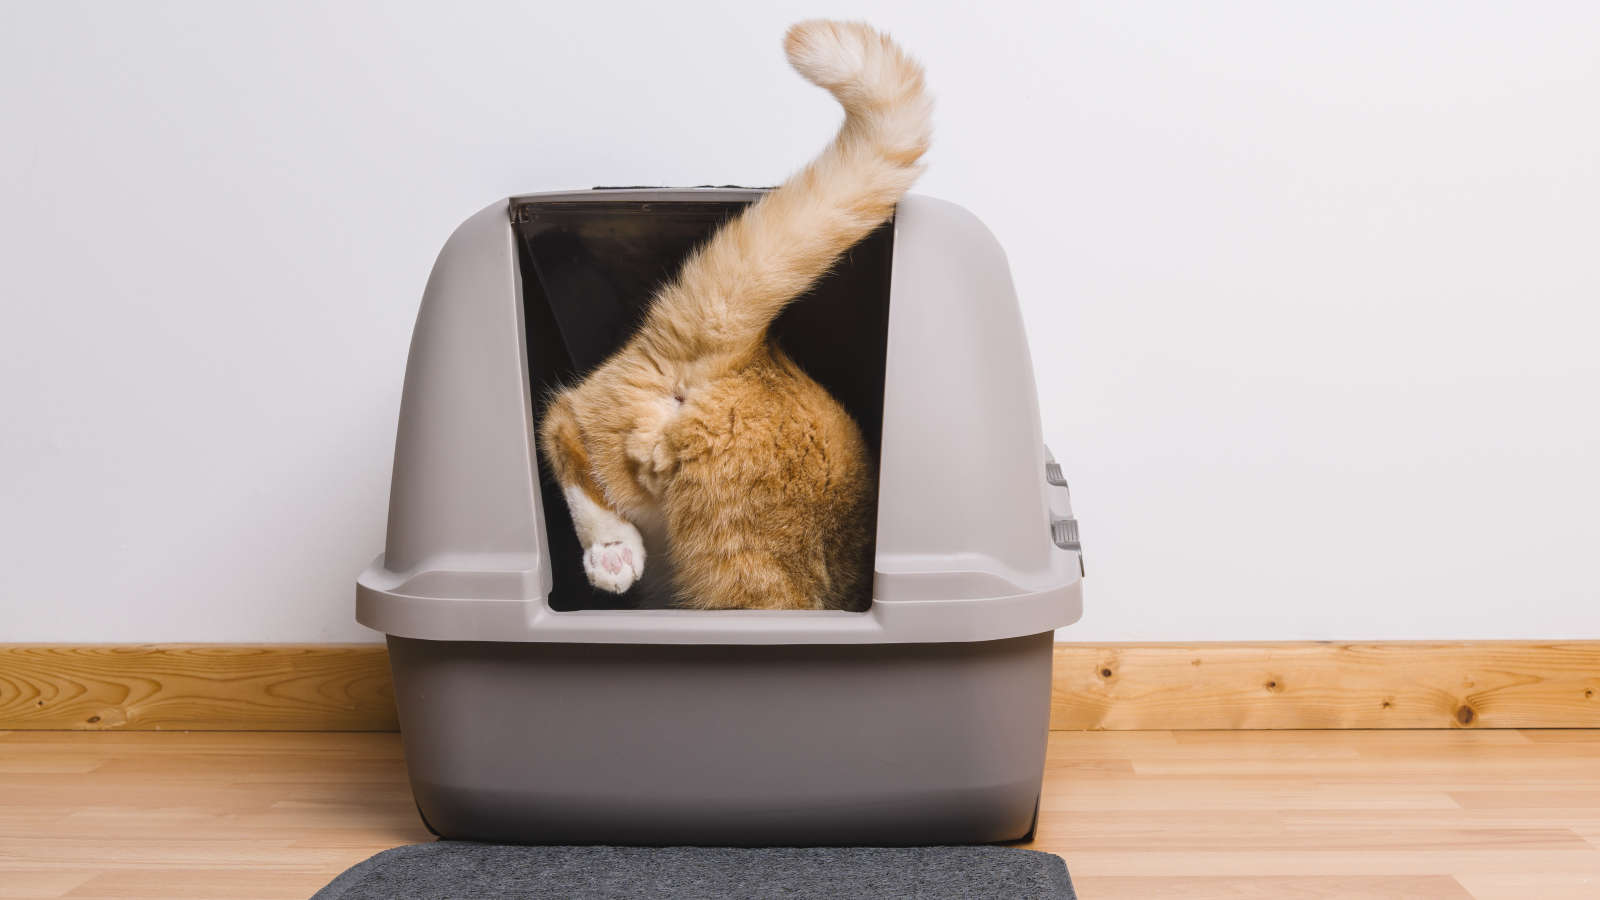 How to Make Your Cats Use the Freaking Litter Mat